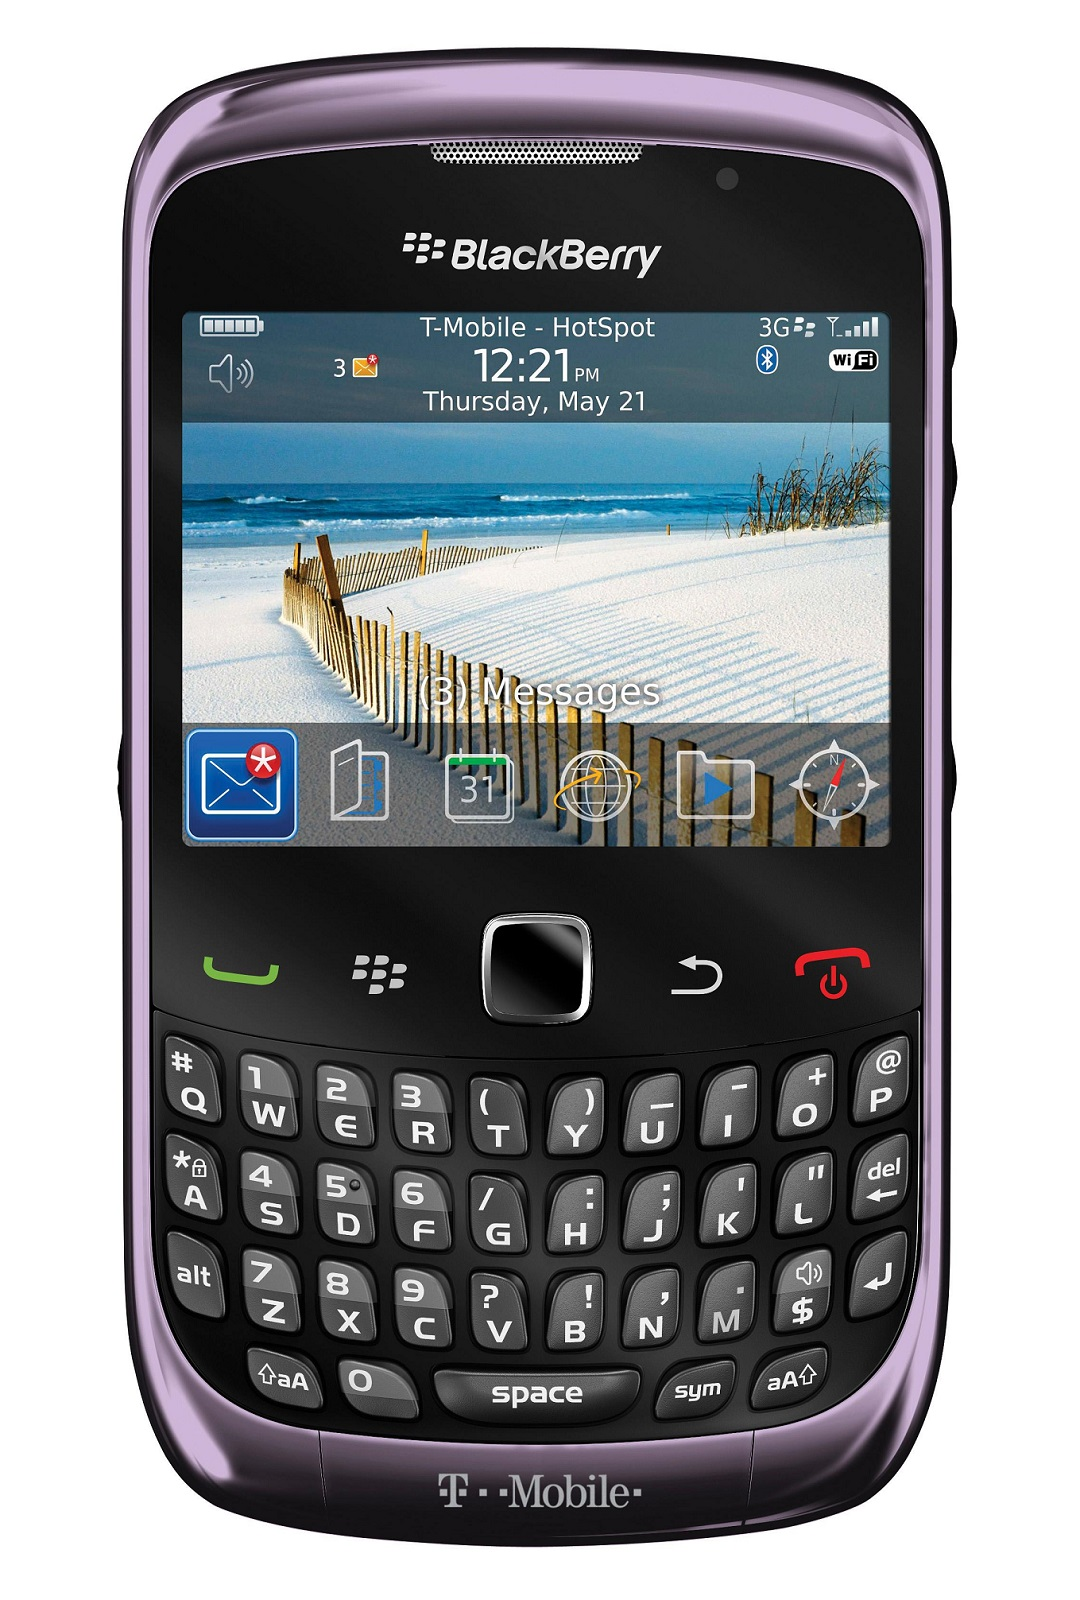 Blackberry 9300 Curve 3G WiFi Bluetooth Phone in Smokey Violet Unlocked